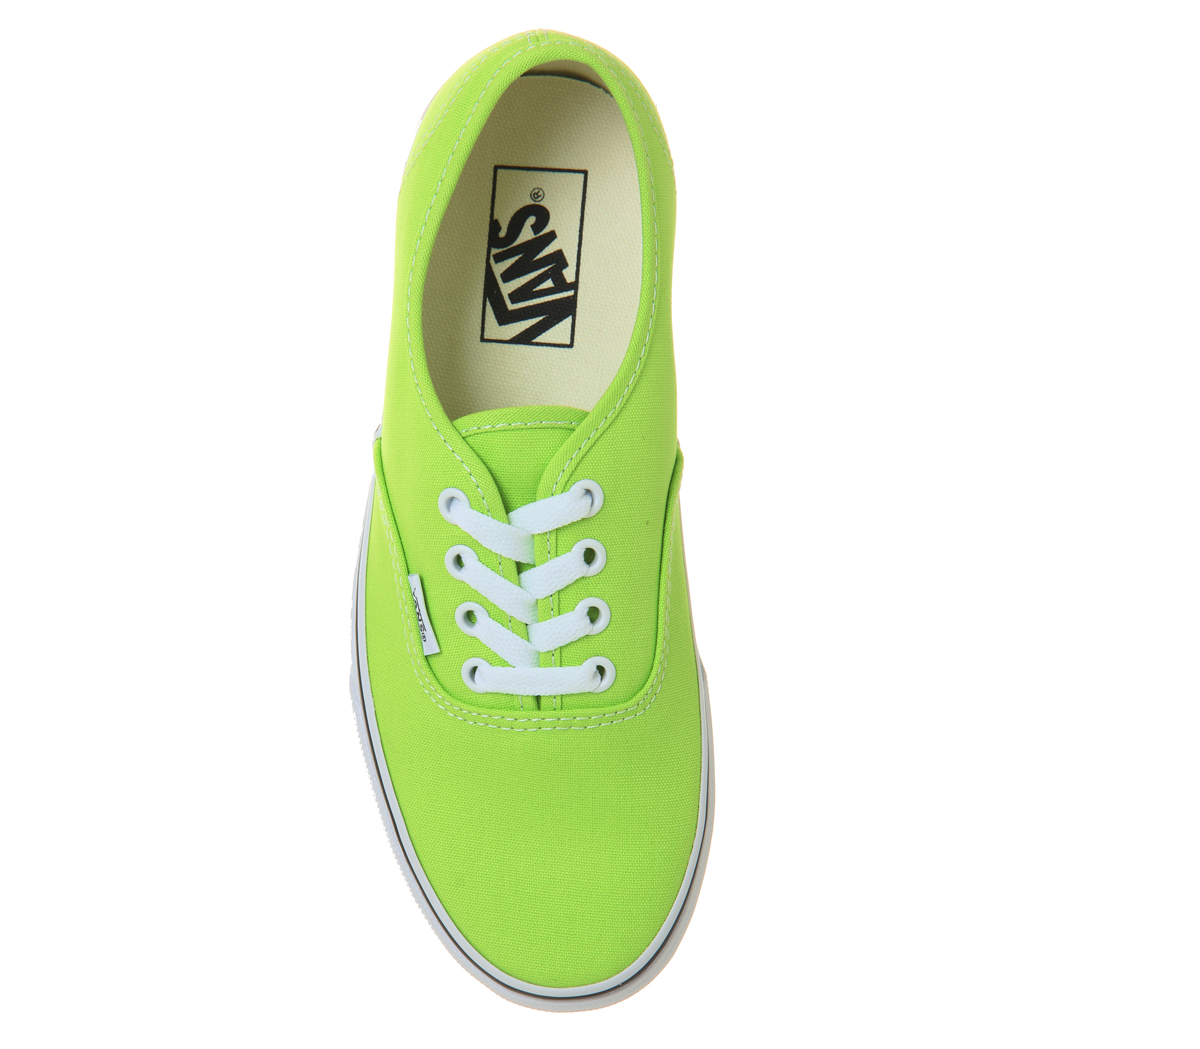 d71bafb5b444 Sentinel Womens Vans Authentic Trainers Jasmine Green Trainers Shoes